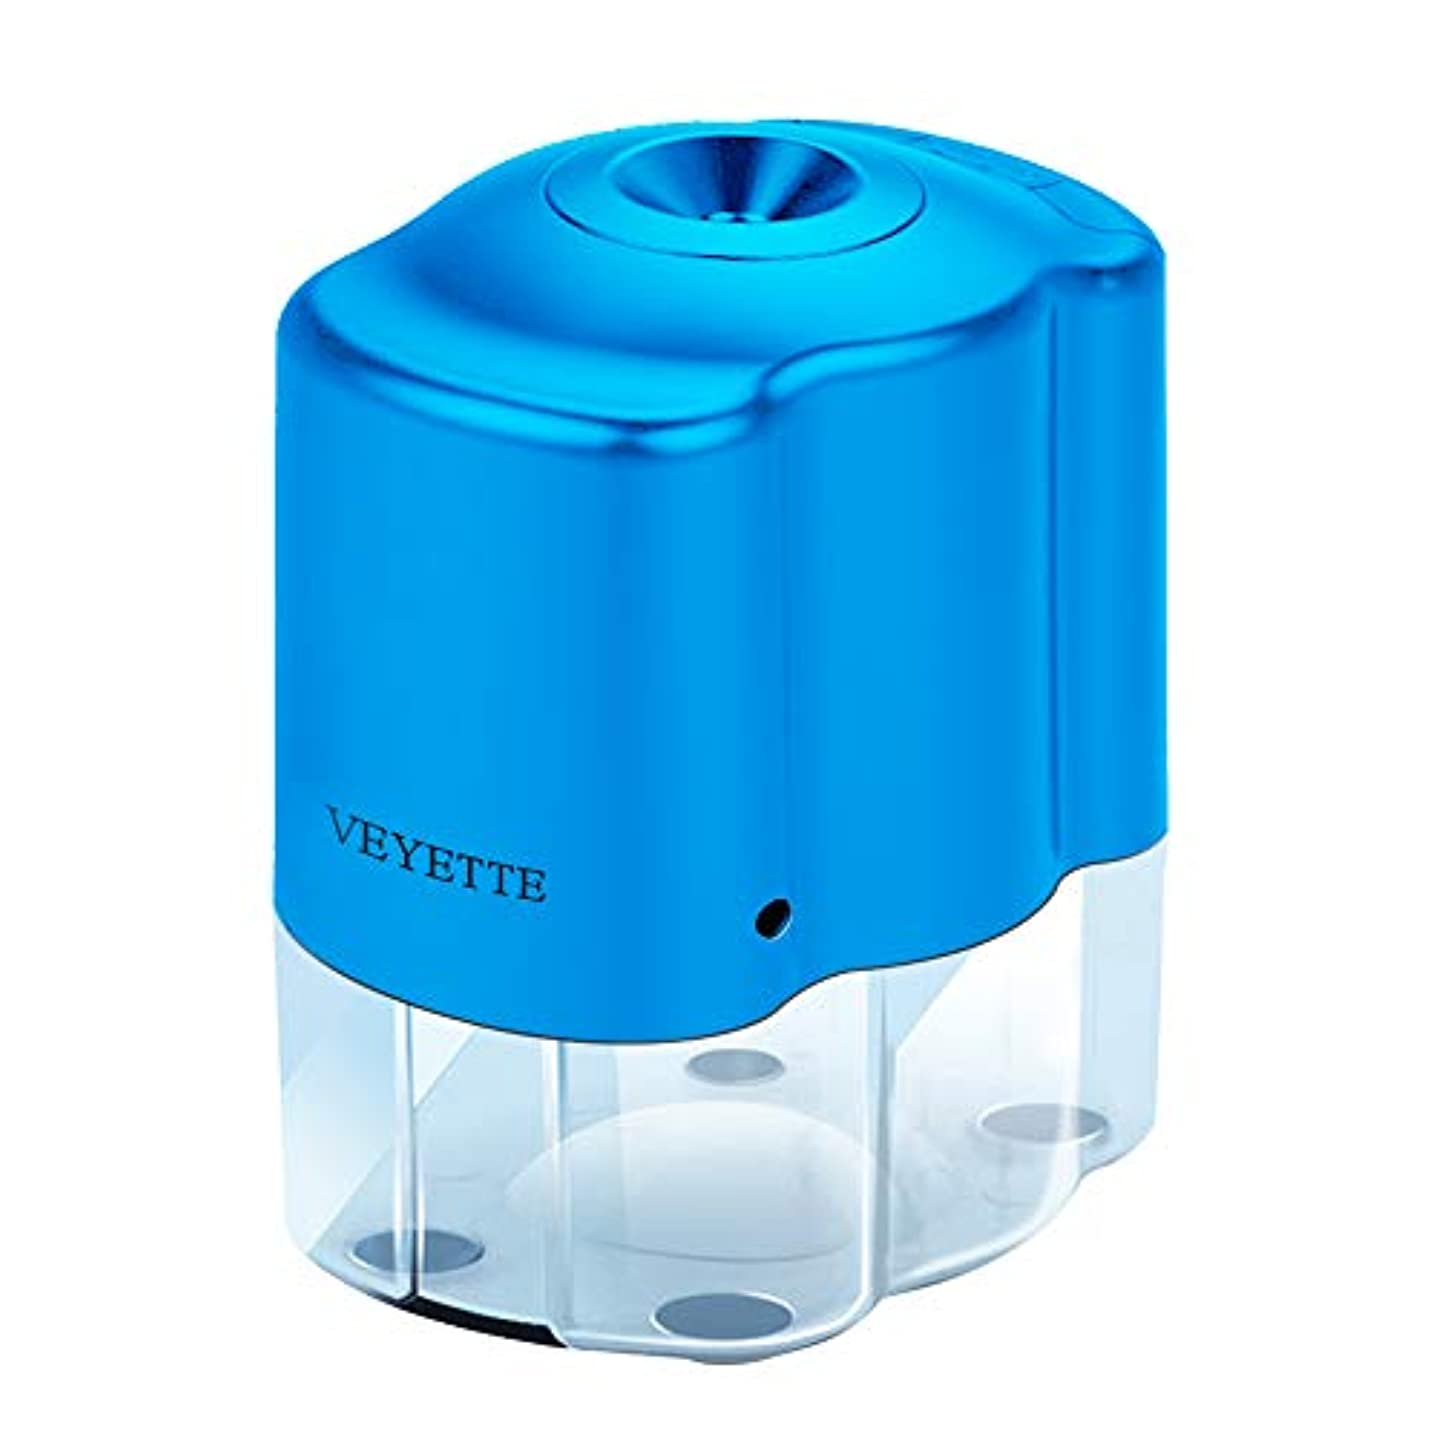 Electric Pencil Sharpener,VEYTTE Efficient Pencil Sharpener with Helical Blade for No.2 Pencils and Colored Pencils, Adapter Included, Blue